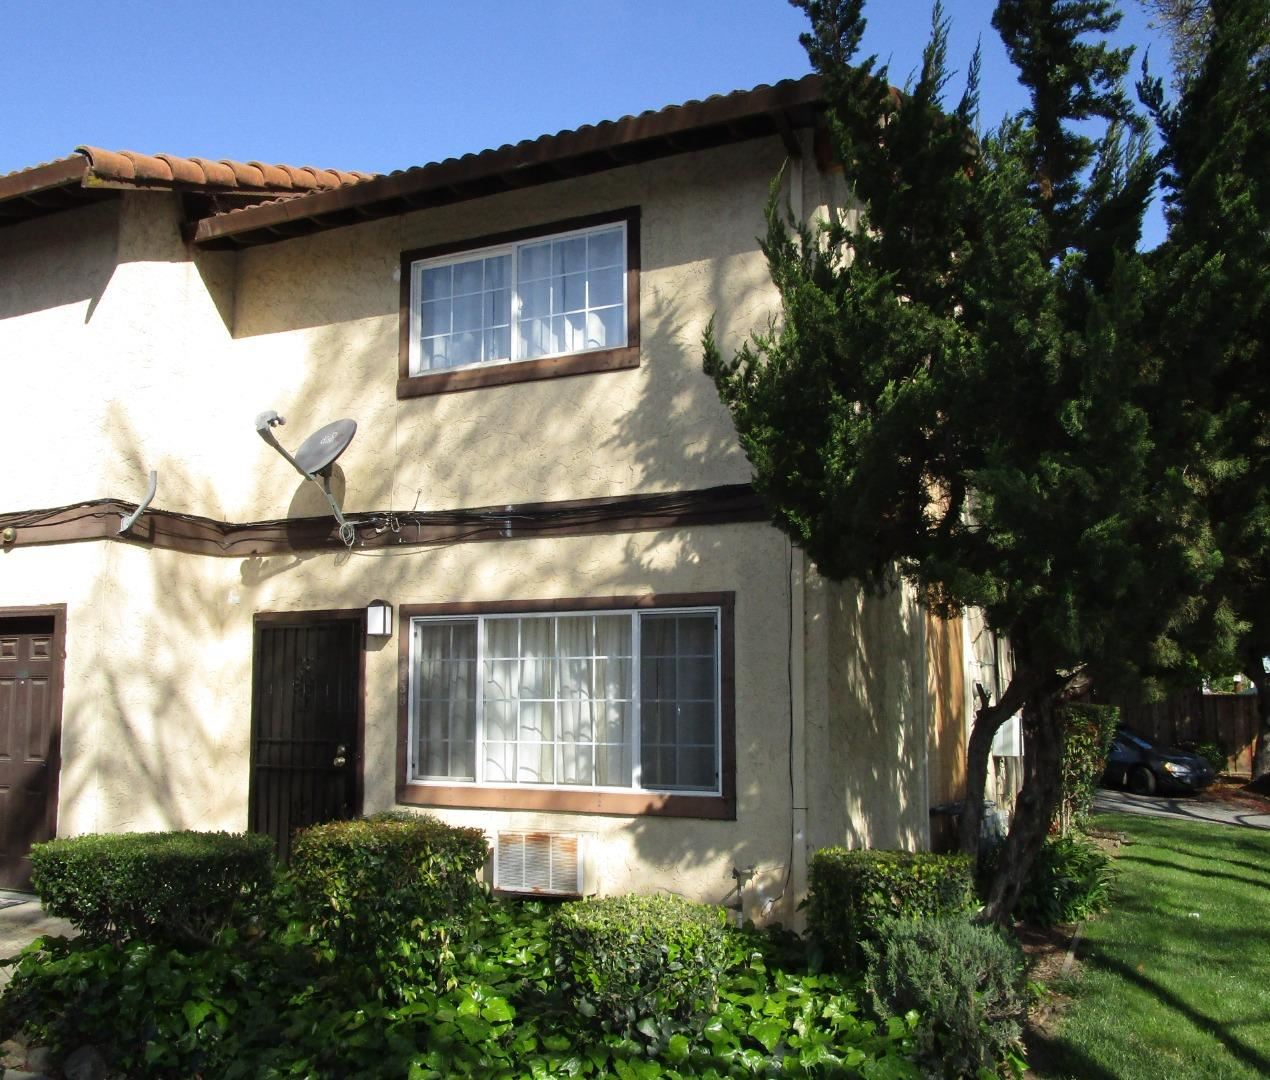 Photo for 7759 Murray AVE, GILROY, CA 95020 (MLS # ML81837270)